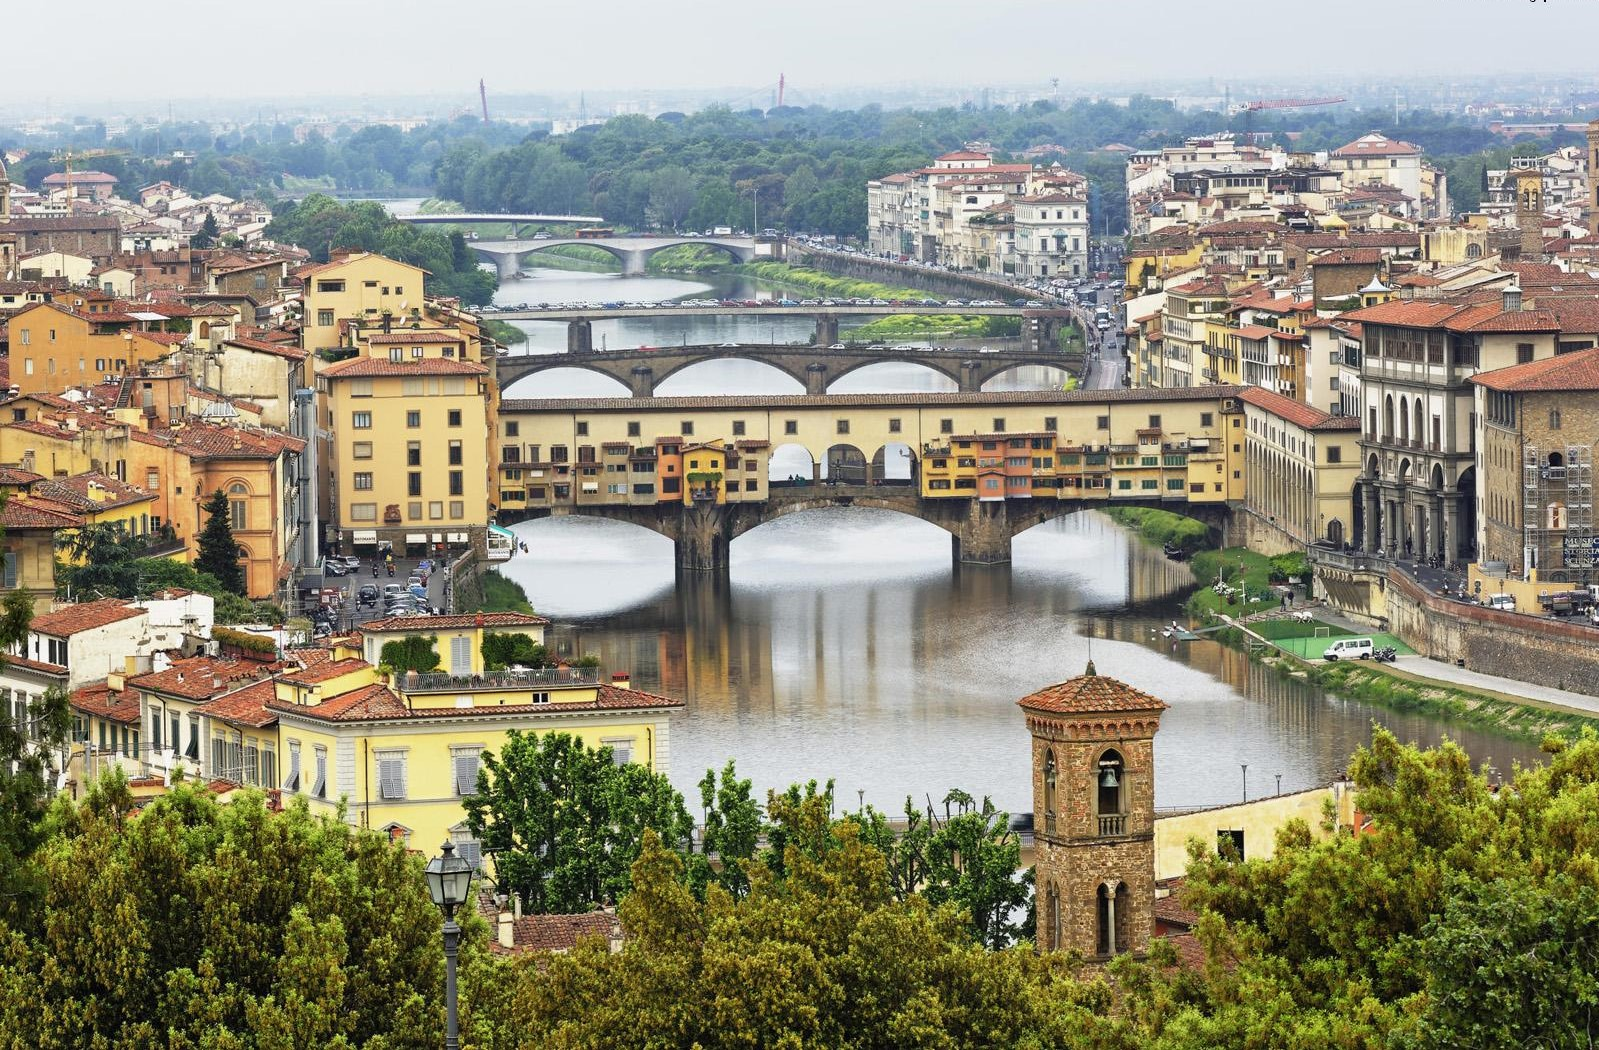 Florence_Ponte_Vecchio_Beautiful_Italian_Old_Bridge_Arno_River_Italy_Hd_Desktop_Wallpaper_citiesoflove.blogspot.com (2).jpg